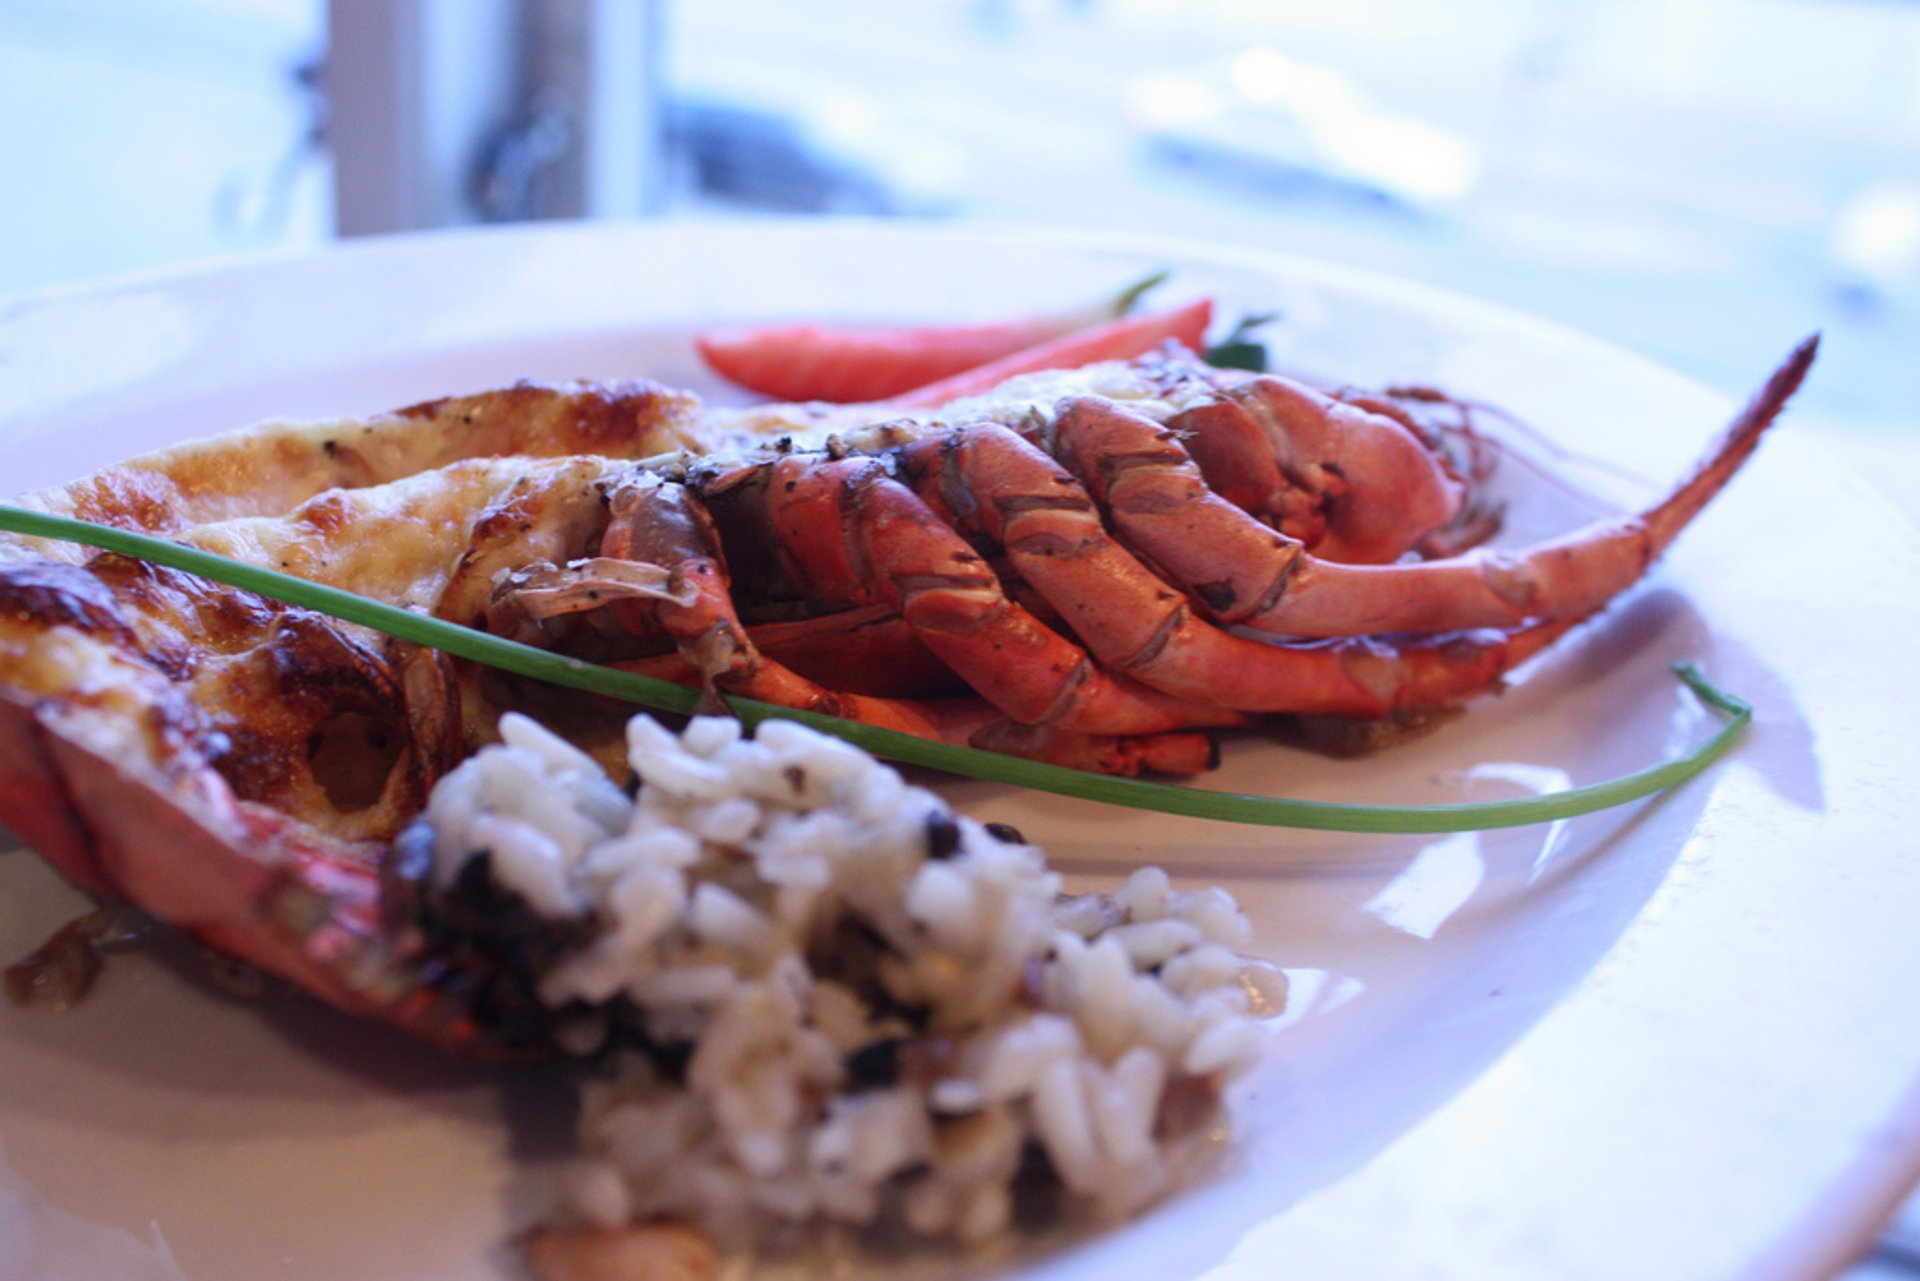 Norwegian Lobster in Norway - Best Season 2019